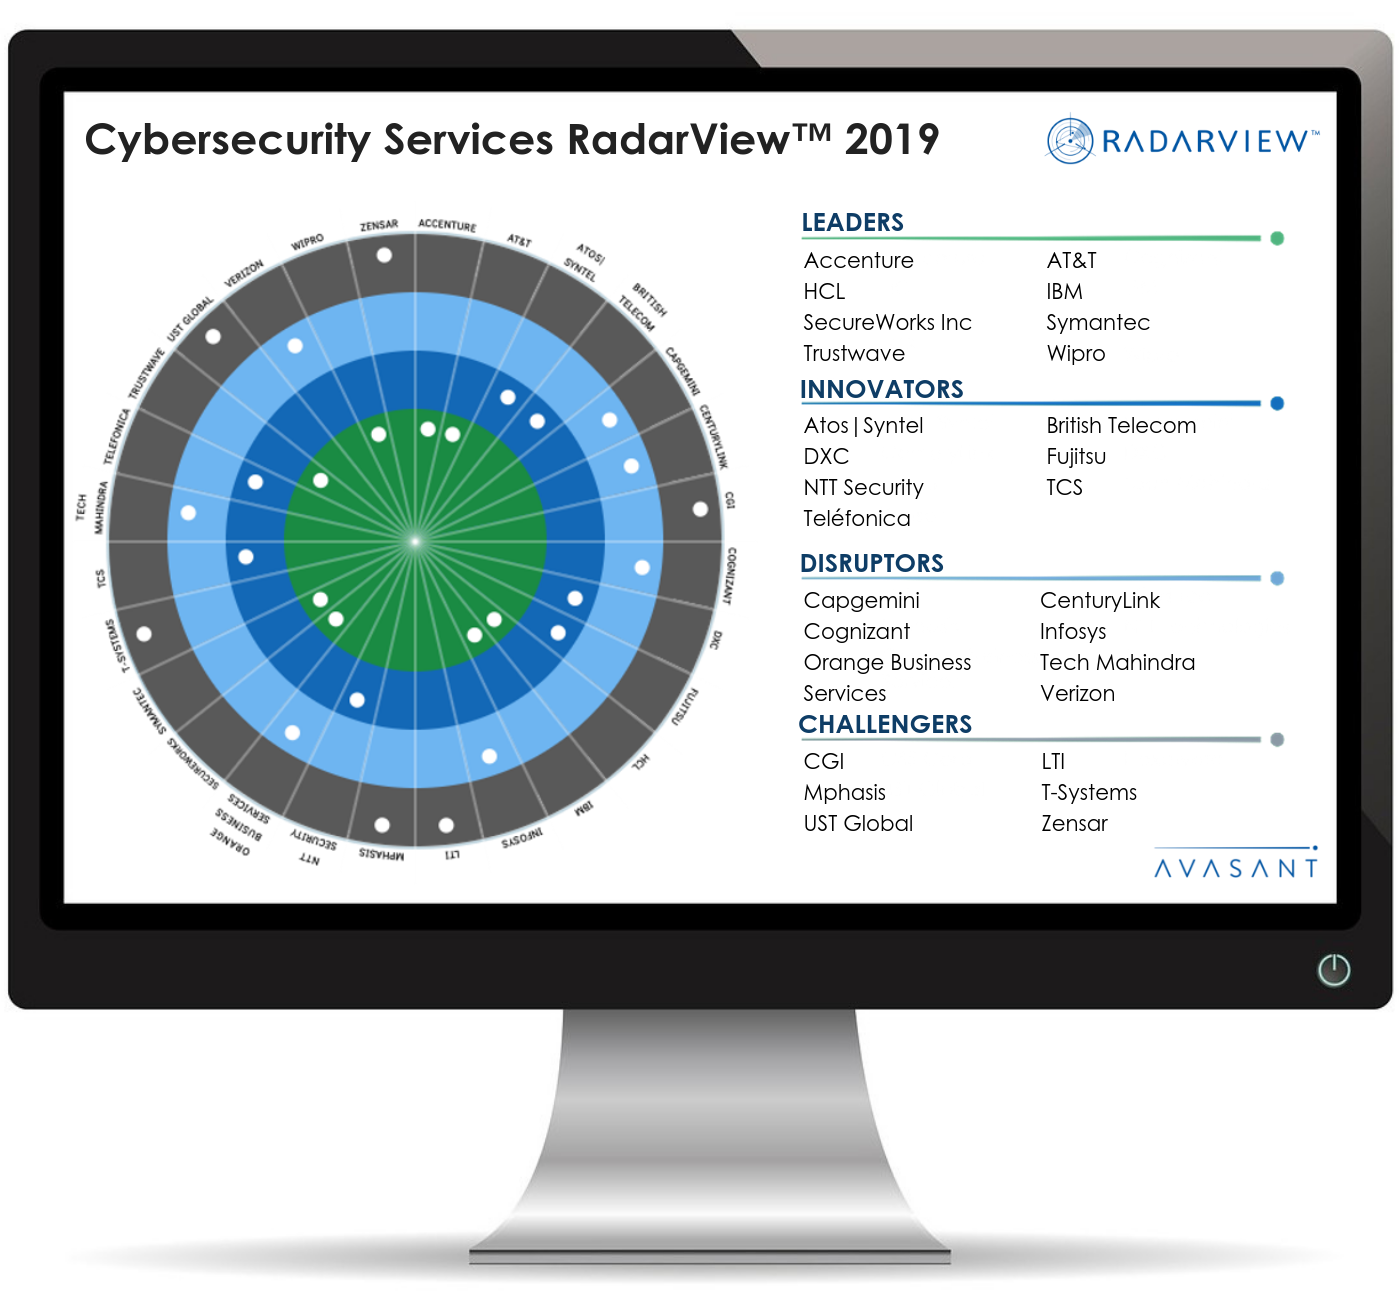 Copy of Copy of Ai and Applied Analytics full 2 - Cybersecurity Services 2019 Secureworks Inc RadarView™ Profile